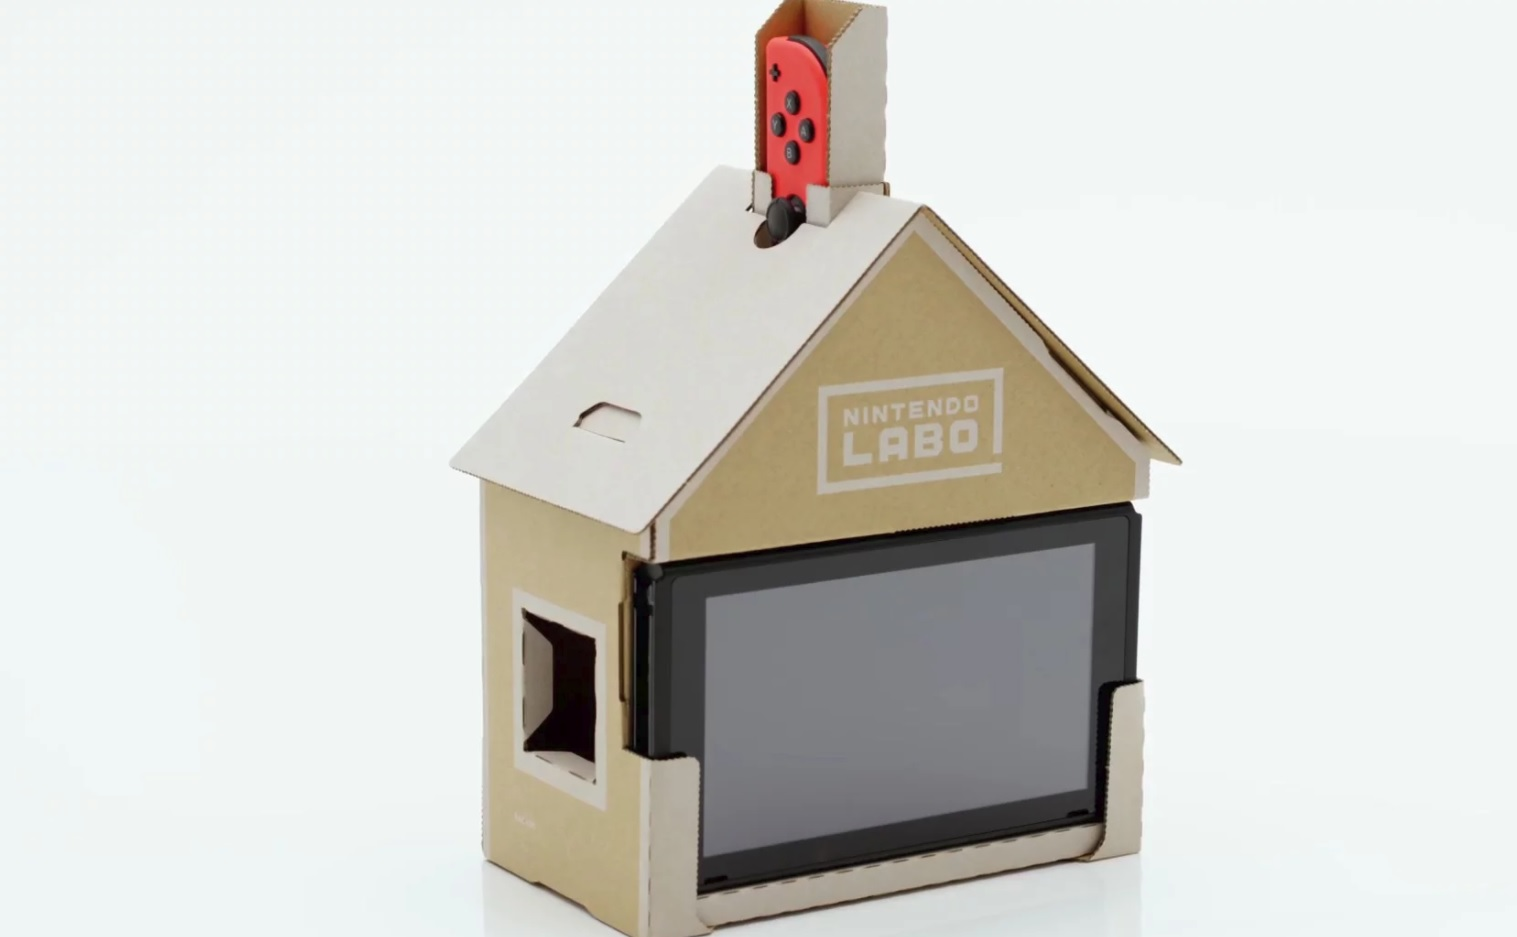 The German game ratings board's cleaning crew almost threw Nintendo Labo in the garbage screenshot